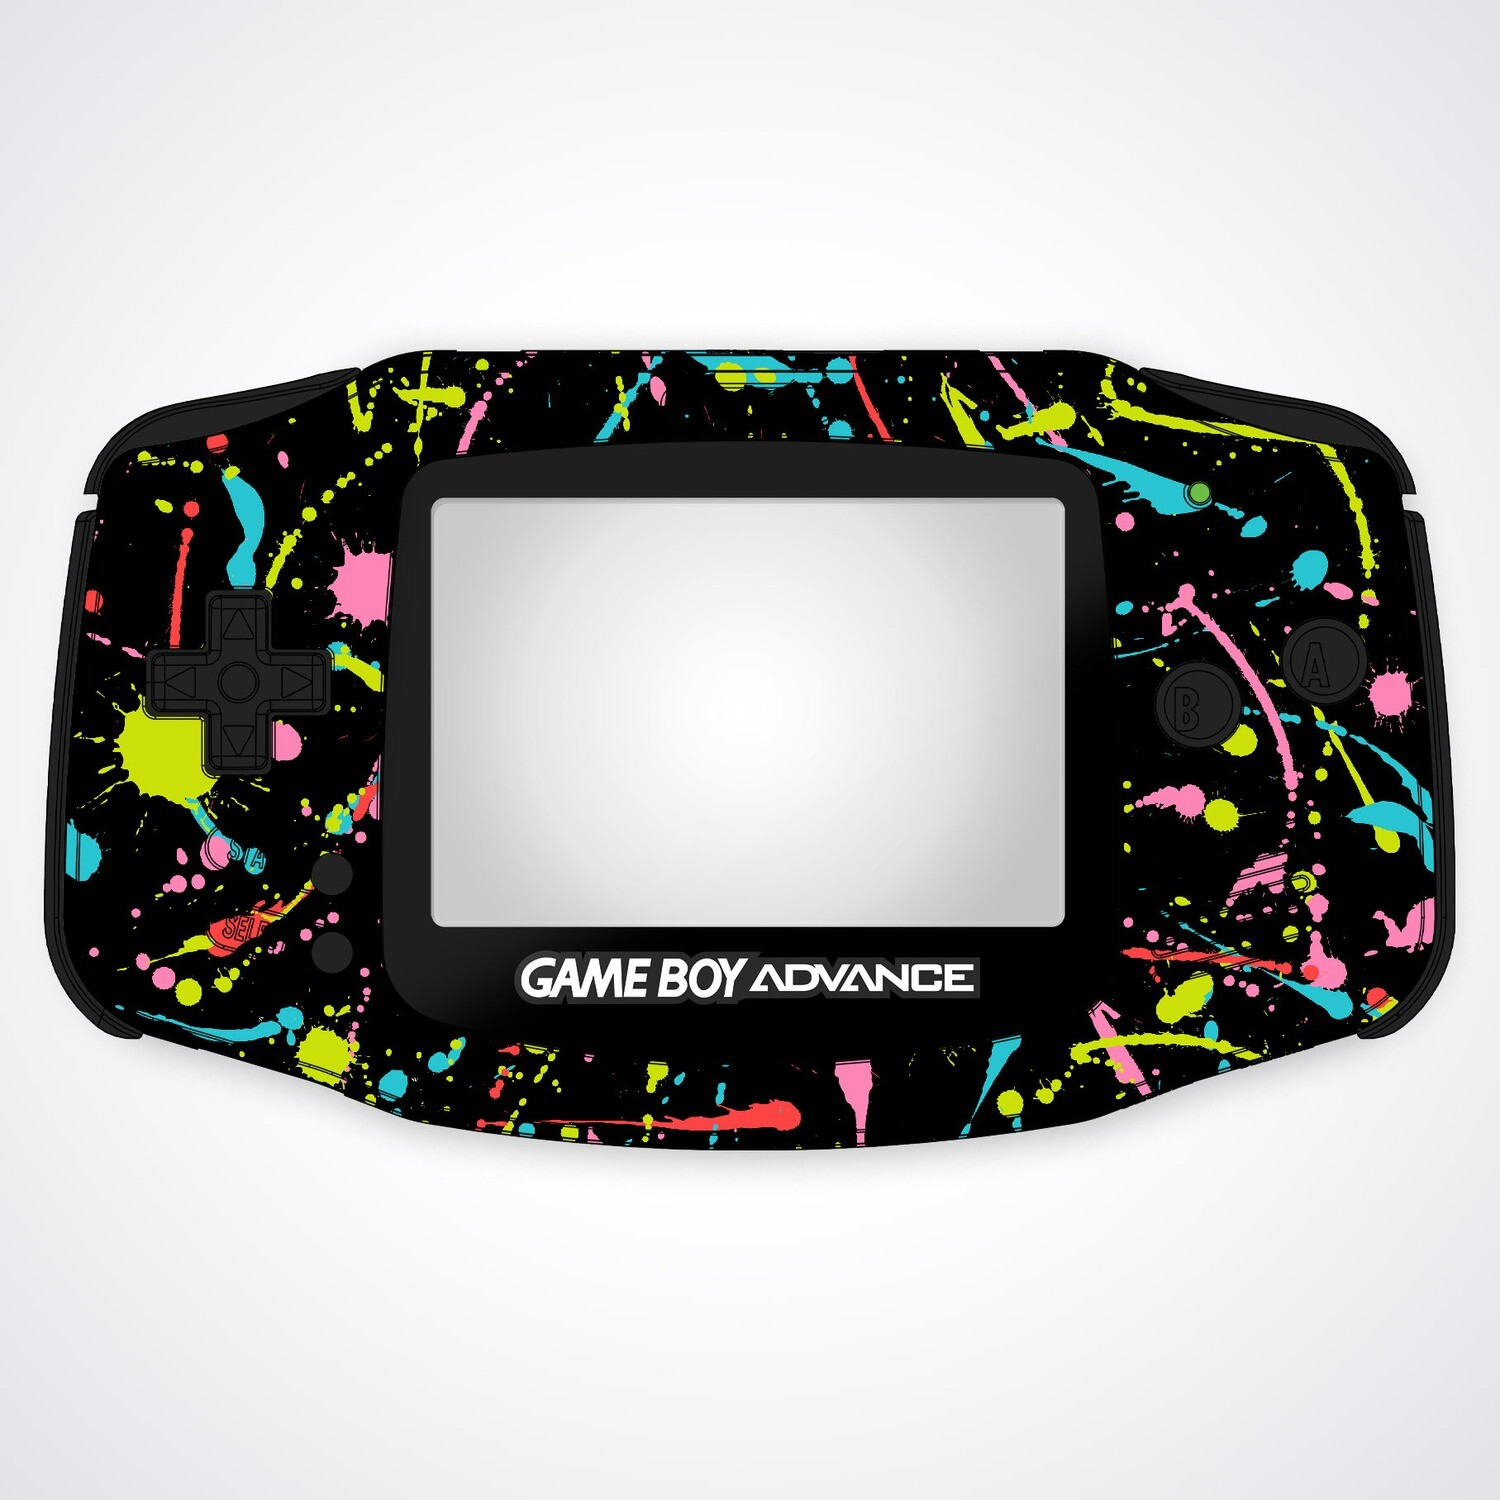 Game Boy Advance UV Print Shell Kit (Splash)